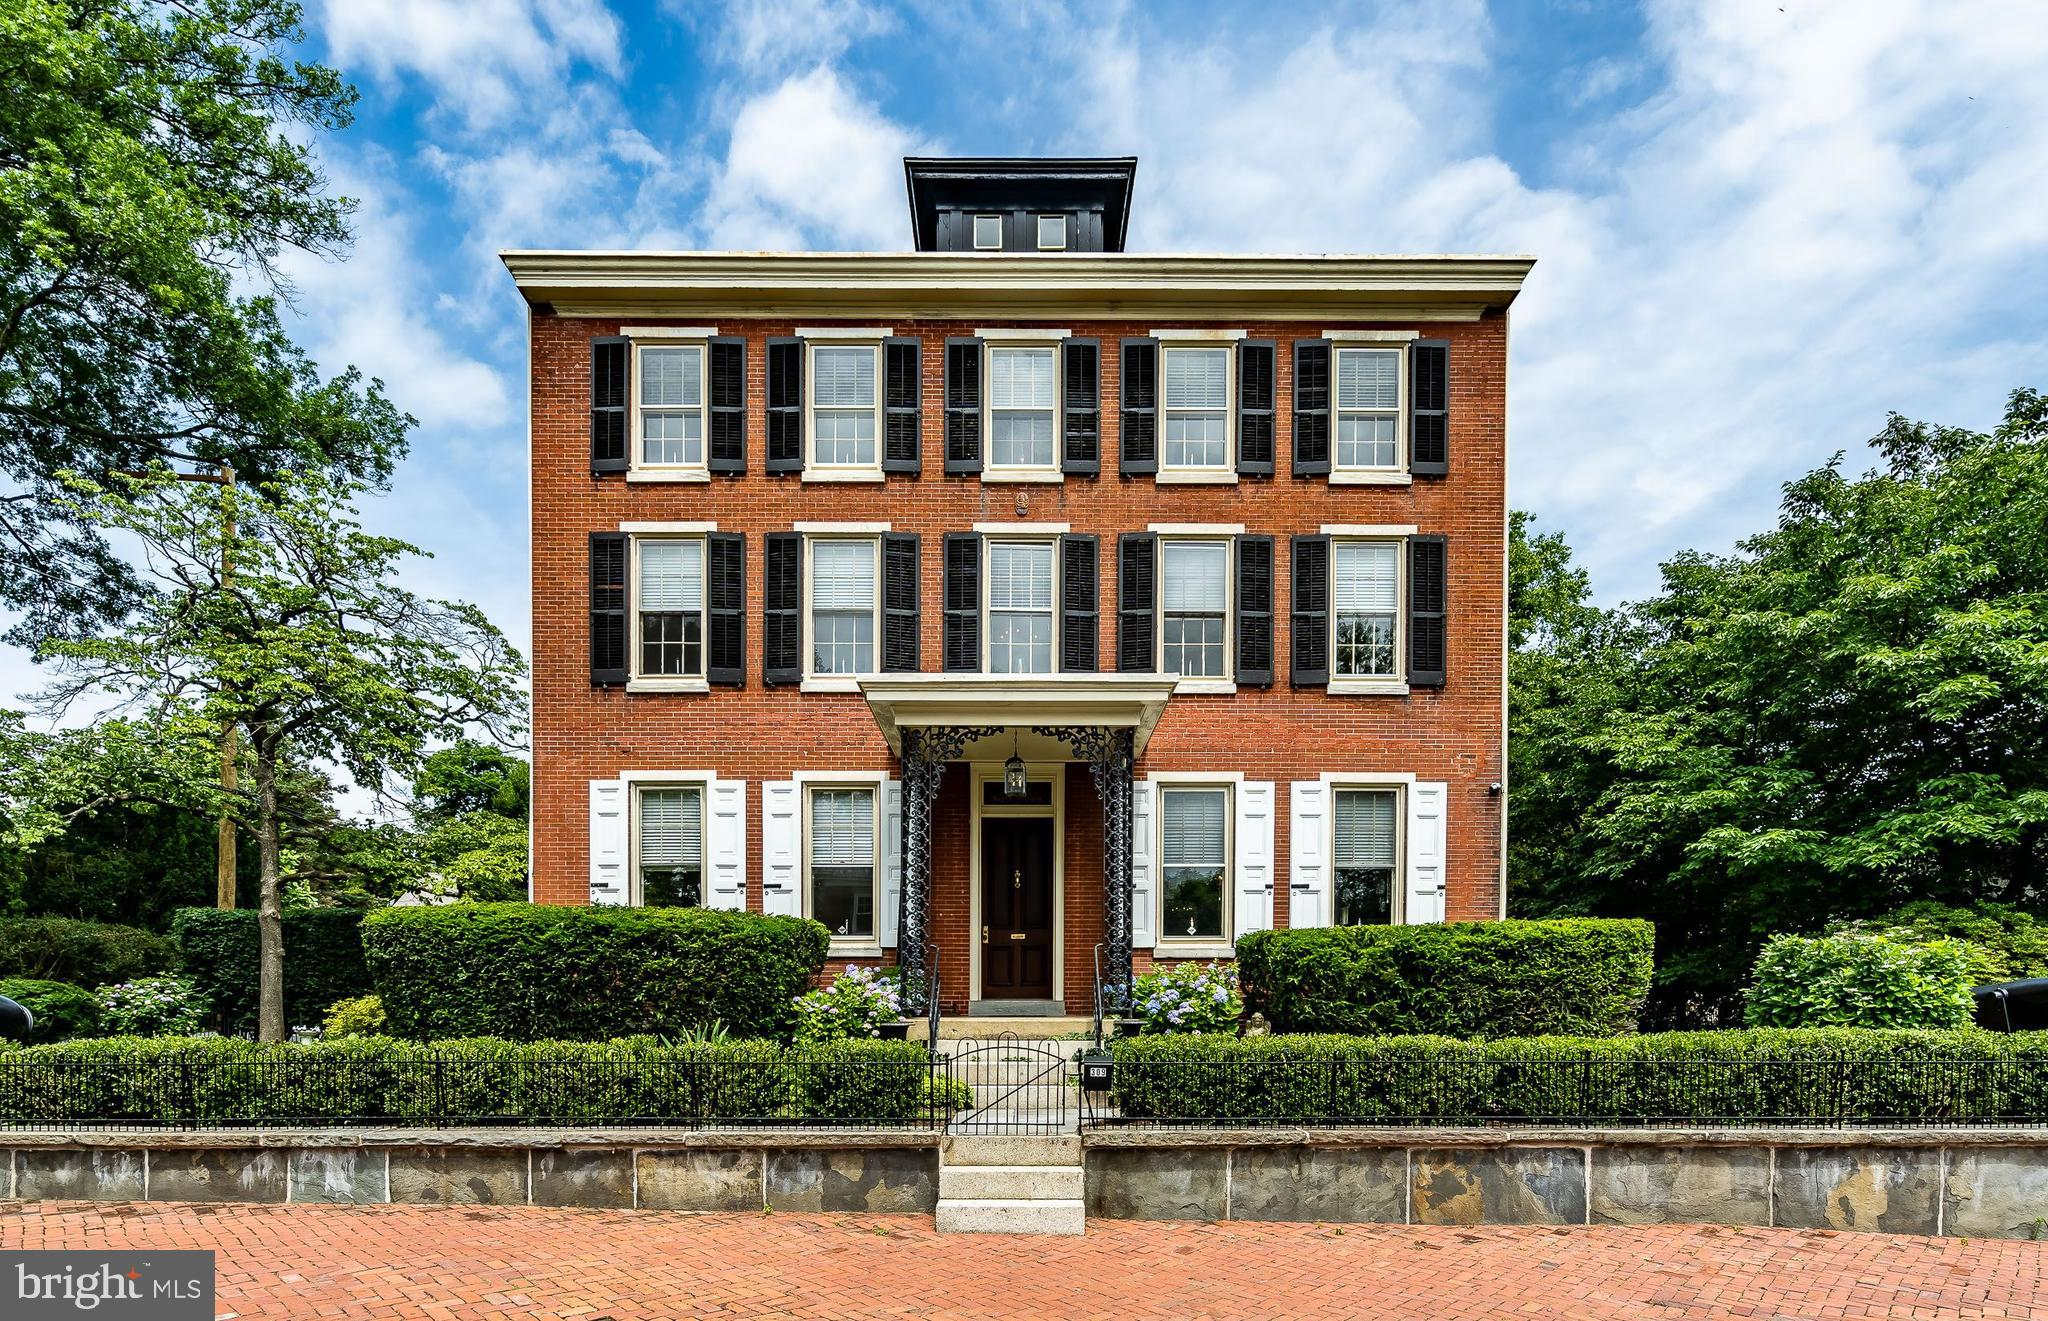 """This Majestic Federal Colonial offers secluded professionally maintained grounds. Mature trees, shrubs and plantings adorn this property, which is surrounded by wrought-iron fencing and gates. One of the most sought-after neighborhoods in West Chester Borough. West Chester Borough has been named in many publications as """"One of the best small towns in the country"""". One block walk to """"Marshall Square Park"""". Marshall Square was West Chester's first park and Town Square in the borough. Some of the amenities of the park are a play-ground, Gazebo, basketball courts, water fountain, and plantings for the botanist enthusiast, and many historical references on Marshall Park's website. Just walk a few blocks and you're in the center of town. This incredible brick built home circa 1872, has all the ambiance, charm, character and elegance one would expect and yet all the modern amenities required in today's homes. This amazing 3 story home even has a """"Widows Walk"""". Although there is no need to view incoming ships from the Delaware, this adds to the allure of the home. Enter through the front portico into E/H, Beautiful Wooden staircase faces you. To the left is a relaxing Lr. ( 22 x 14.6). Lg entertaining Dr. (22 x 14.6) equipped with a gas fireplace and seating for at least 12-14 people. O/e from the Dr onto the main floor Veranda ( 16.7 x 8.1) w/ ceiling-fan. Secluded area to enjoy and relax. Gorgeous kitchen ( 16.6 x 11.2) w/ Viking appliances, breakfast-bar seating for 3. Directly across is the breakfast-room ( 16.5 x 10.3). Rear staircase to the 2nd floor office is accessed from this room. Full 1st fl bathroom (11.7 x 7.3) including stall shower. Adjacent to the bathroom is the laundry-room (11.10 x 7) w/ granite topped sink and additional cabinets for storage. A Vestibule (7.3 x 7.8) separates these two rooms. Level side and rear yard leads to a 5-car detached garage, and 3 side driveway parking spaces. Total 8 parking spaces! Yes you read correct very few homeowners in t"""